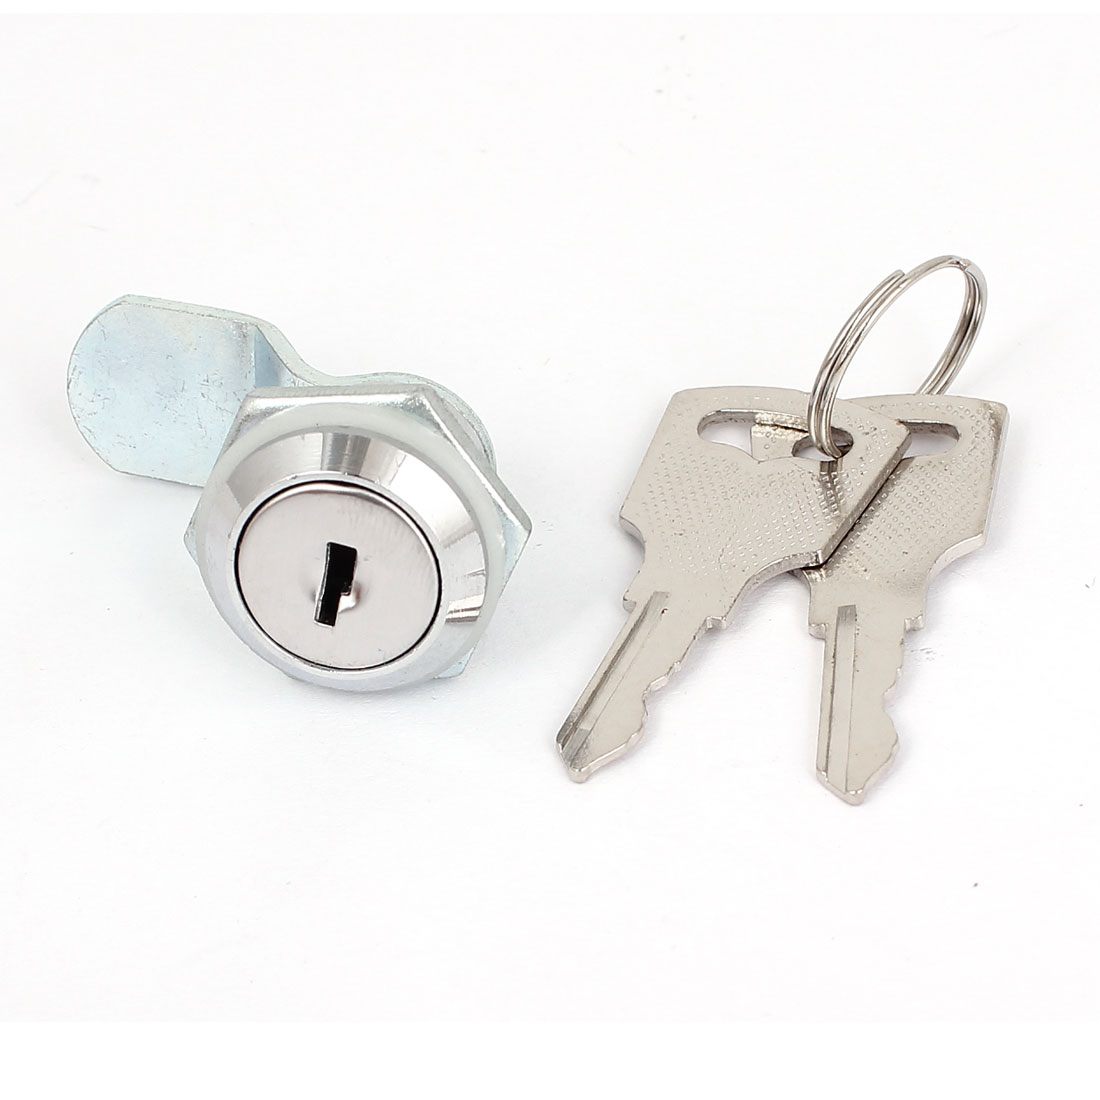 16mm Thread Cabinet Mailbox Door Cupboard Locker Cam Lock Keyed Alike w 2 Keys